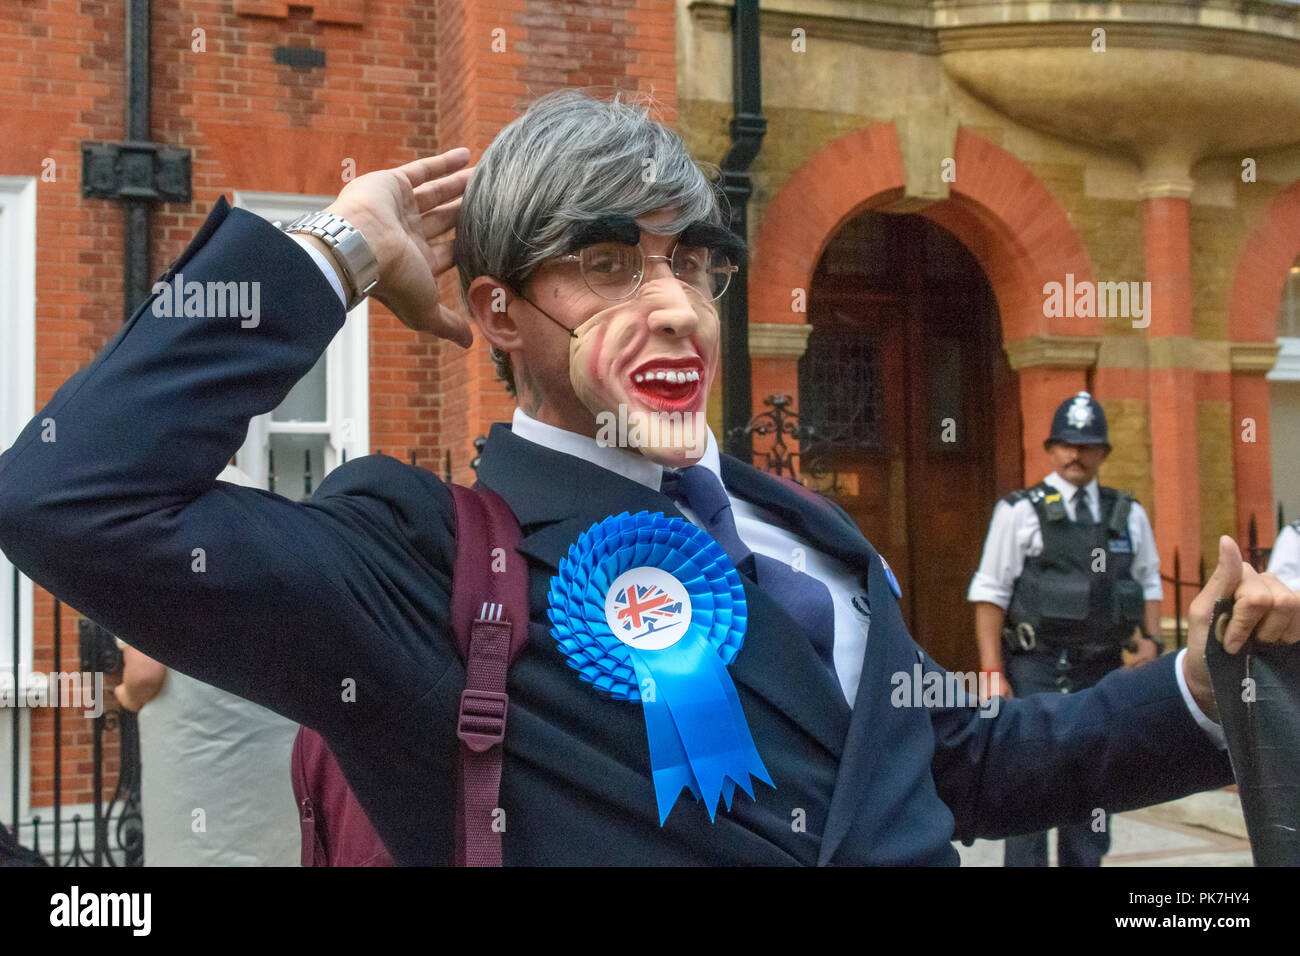 London, UK. 11th Sept 2018. Adam Clifford in costume as Jacob Rees-Mogg at the Class War protest outside the £5.6m  Westminster town house of Jacob Rees-Mogg calling for the release of Veronica Cook, his nanny who now looks after him and his six children. They say she ceased to exist as an independent human 50 years ago and has been subsumed into the Mogg family as if she was being confined in the tower of a gothic mansion. d offered escape to Credit: Peter Marshall/Alamy Live News Stock Photo